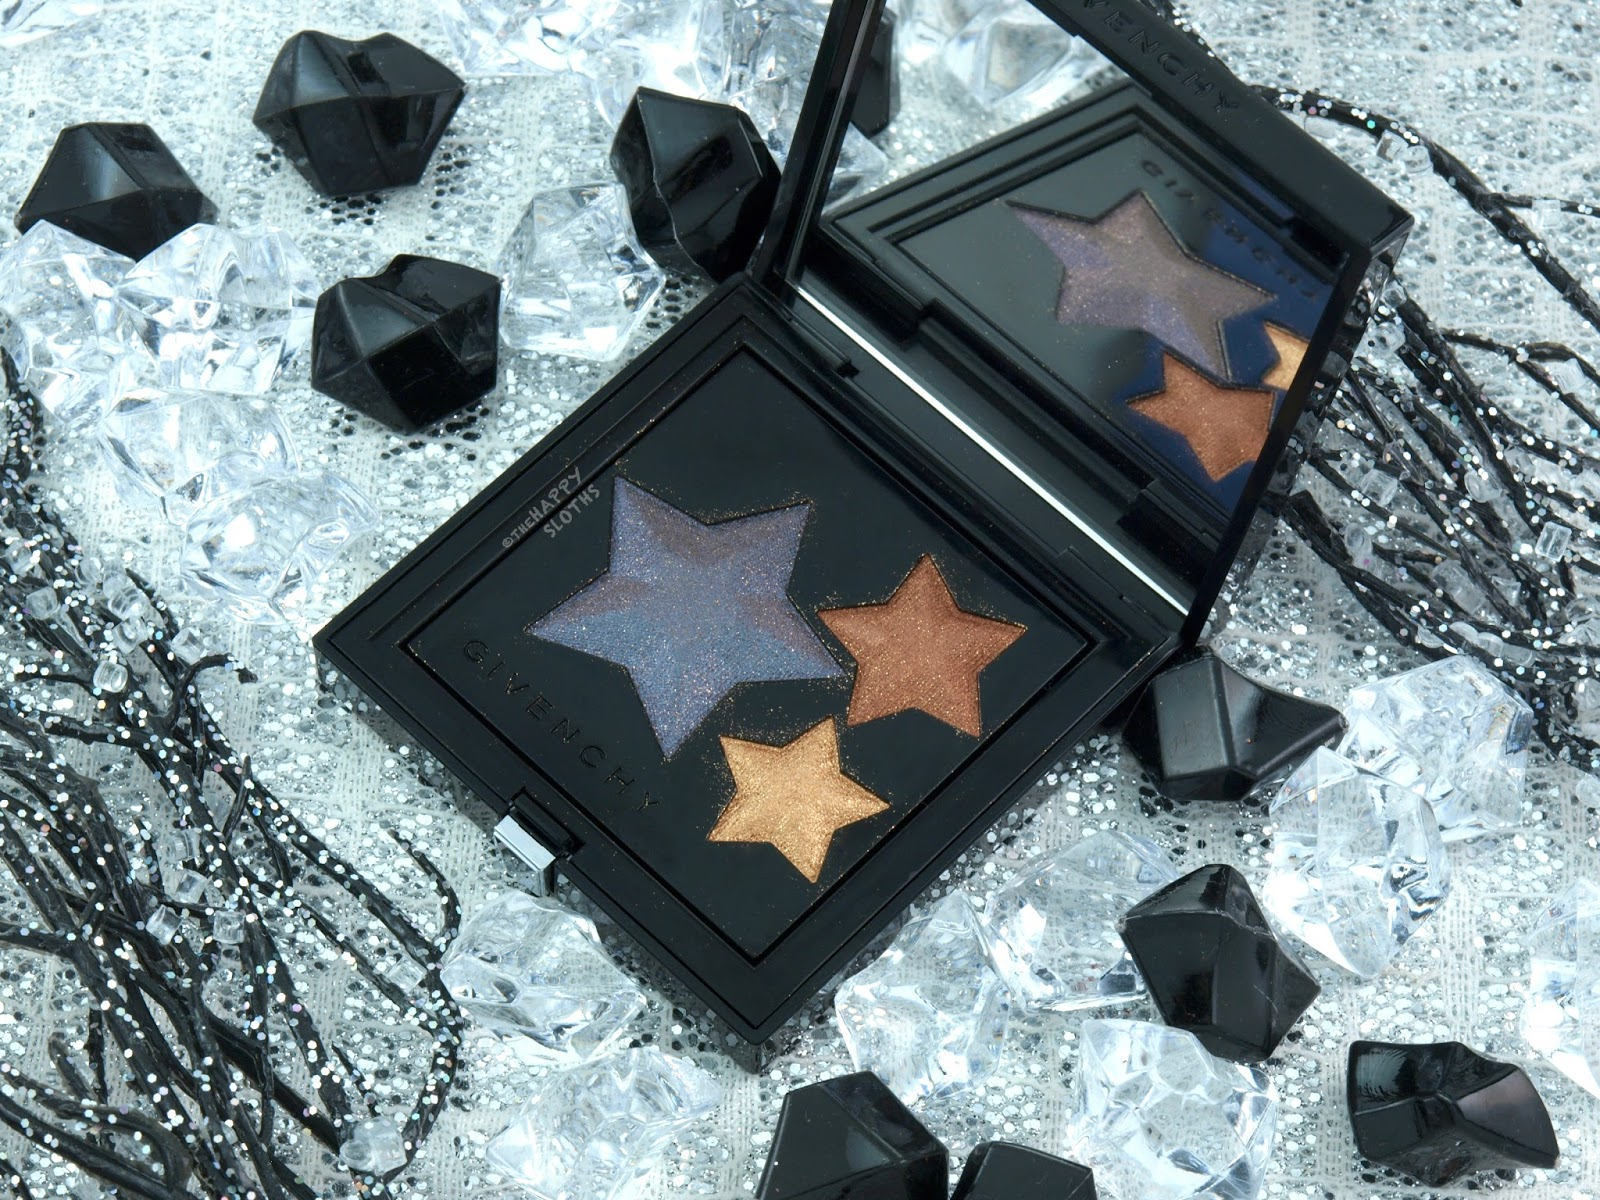 Givenchy Holiday 2017 | La Palette Eclats Nocturnes Eye Shadow Palette: Review and Swatches